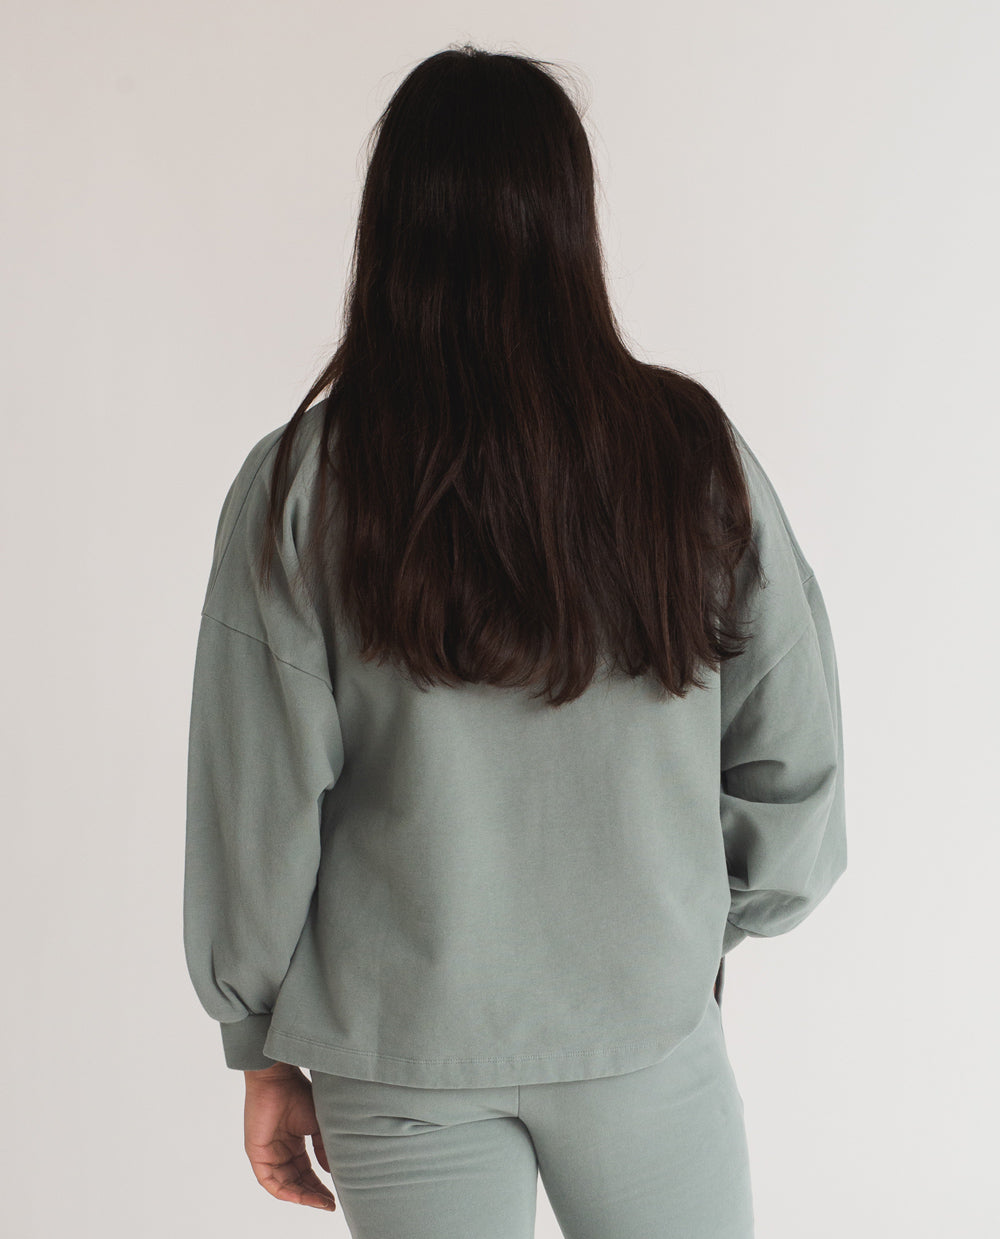 Serenity Organic Cotton Jumper In Ocean